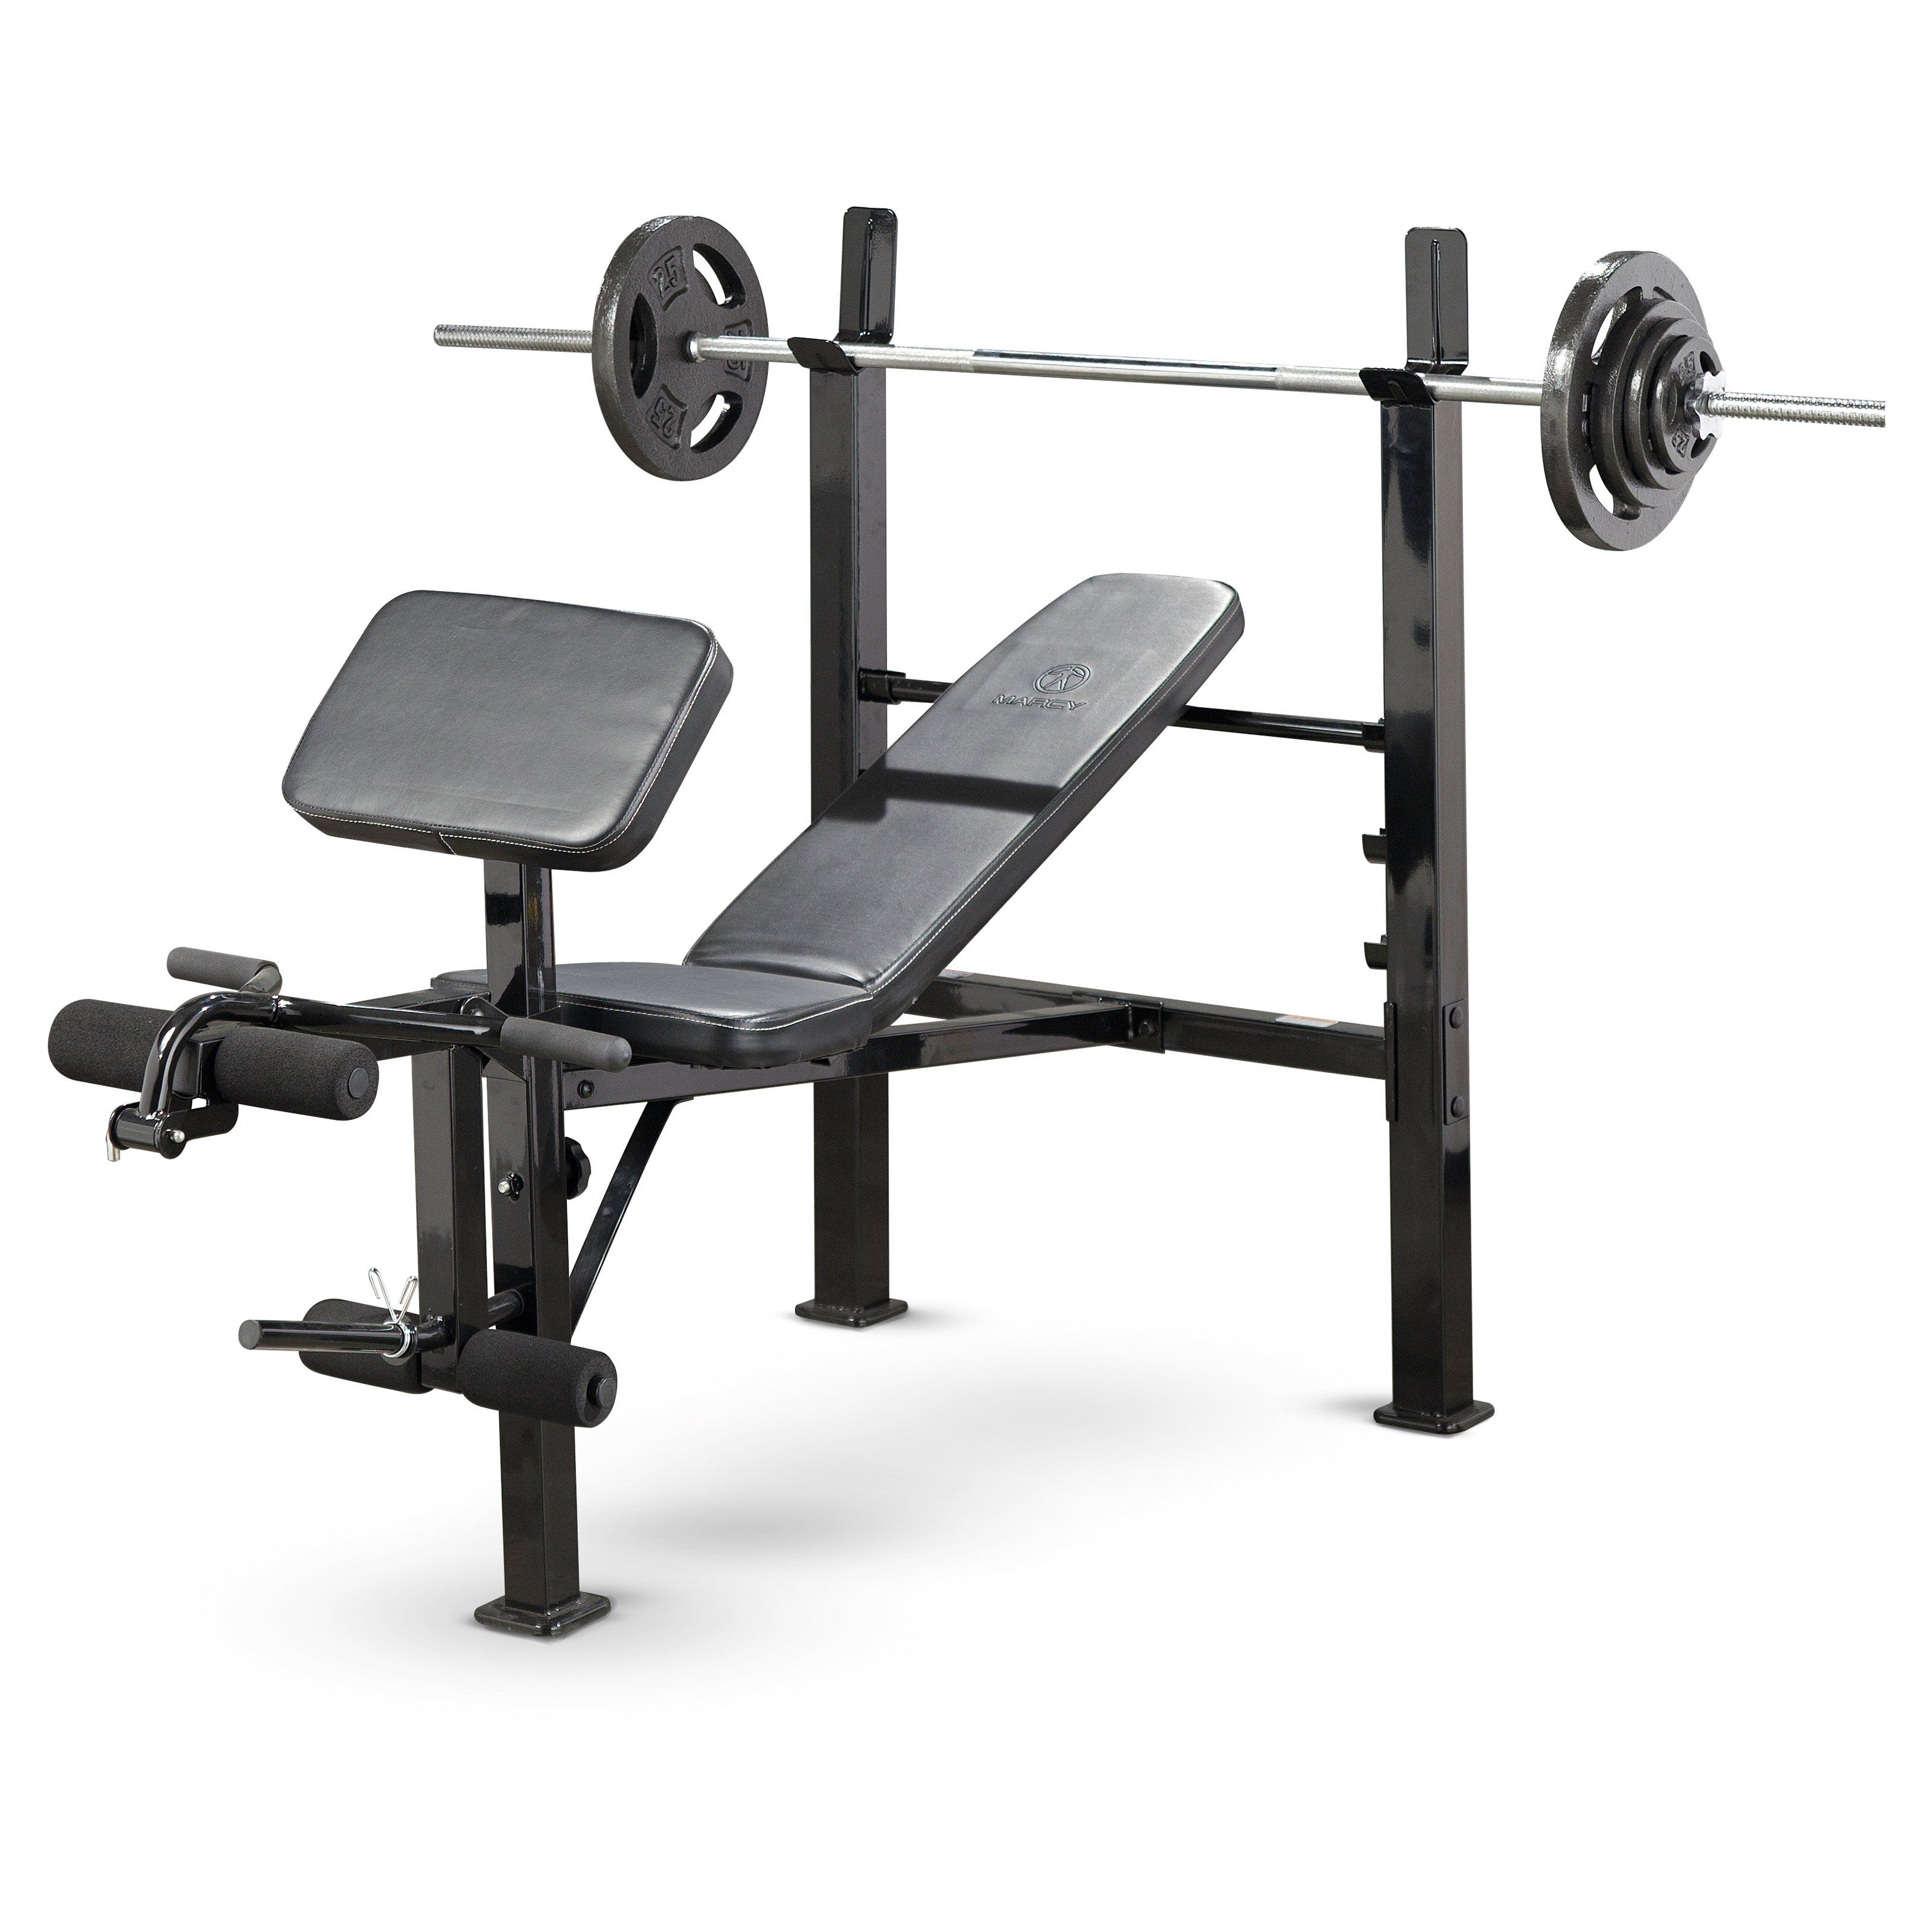 standard gym the diamond workout benches best to essential home md workouts lift building exercise is with bench marcy leg weight elite weights quality focuse strength